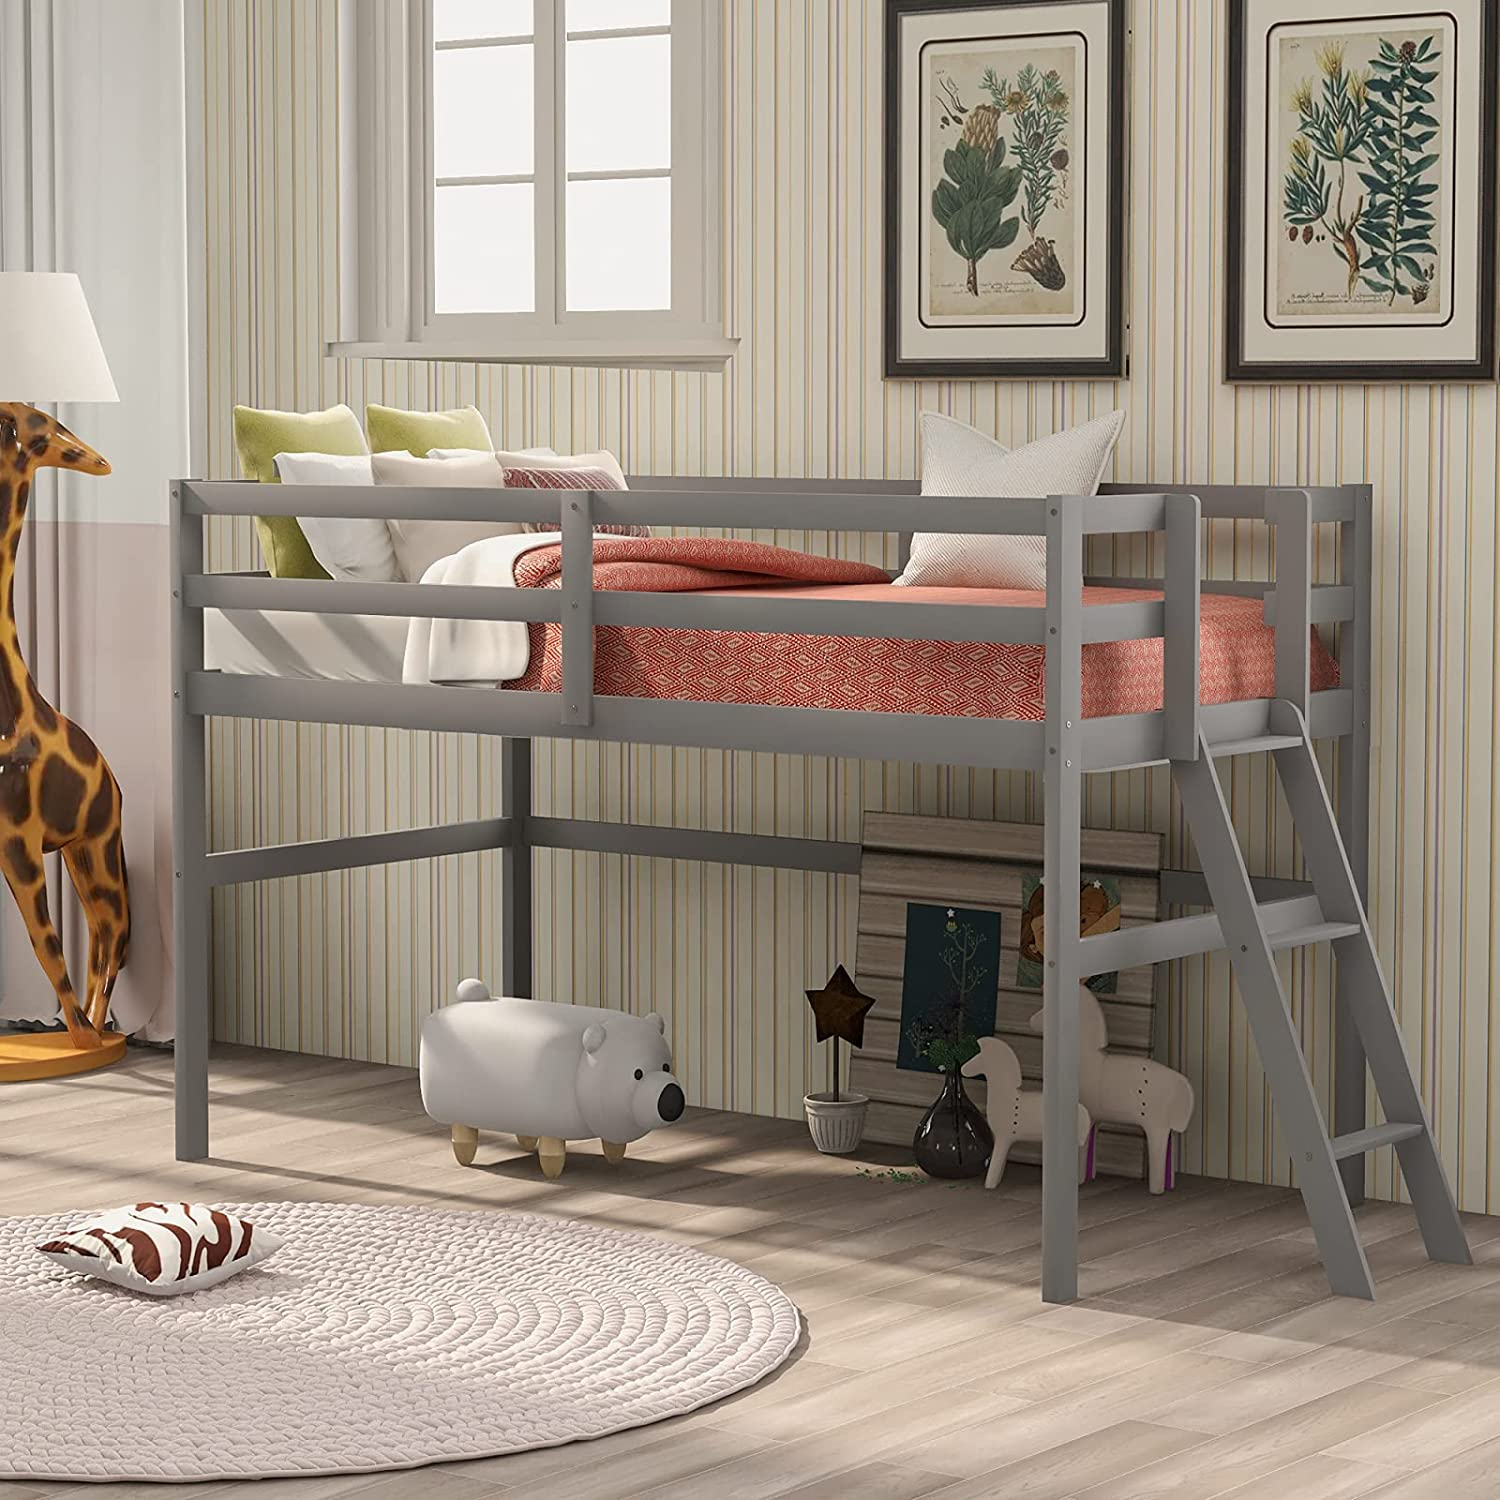 Lazyspace Max 63% OFF 2021 Wooden Low Loft Bed Frame with Ladders and Rails Guard